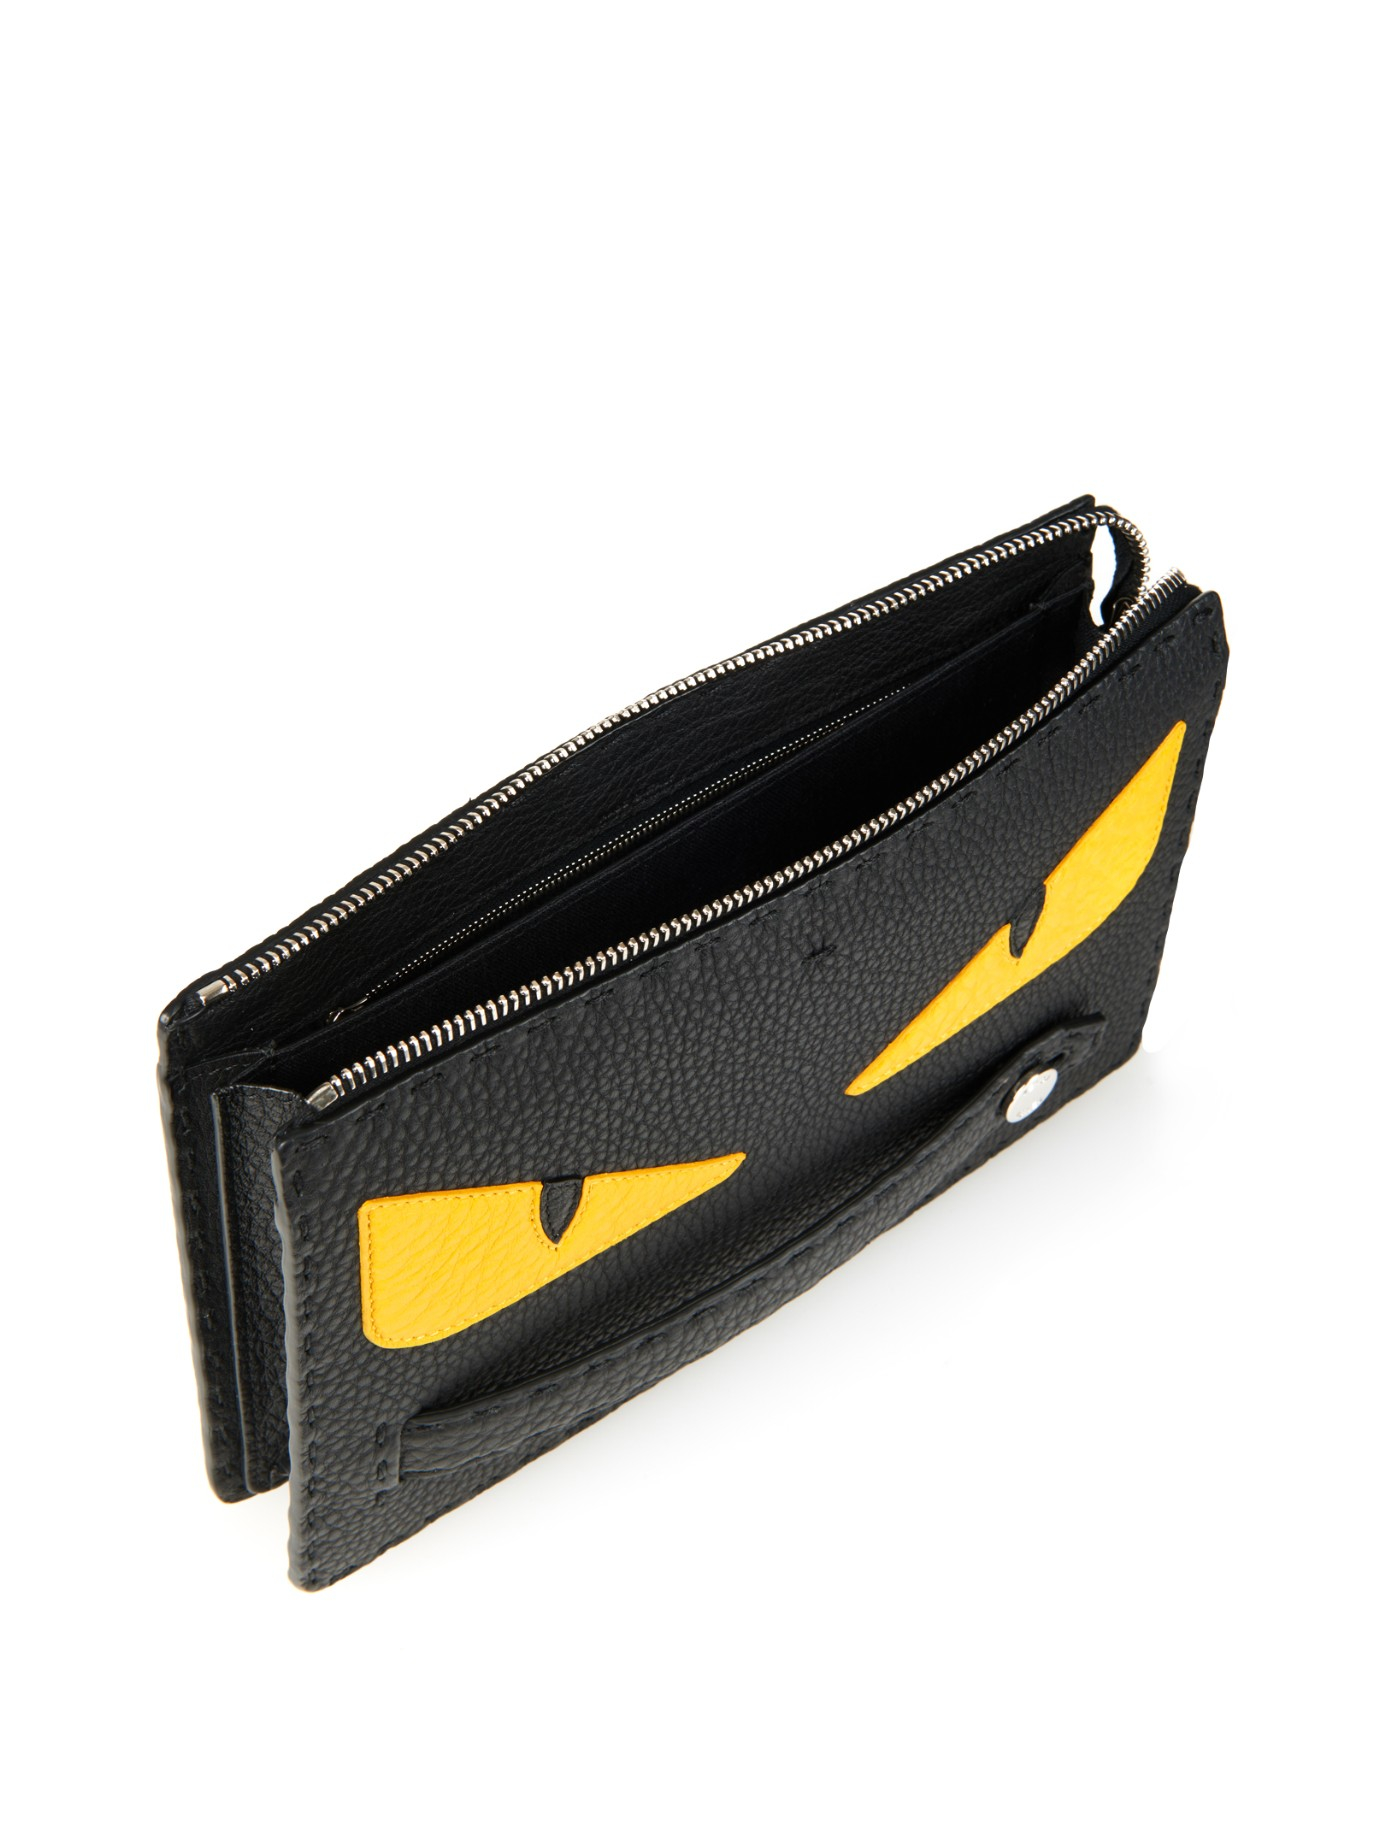 ... low cost lyst fendi bag bugs selleria leather pouch in black for men  3ca2e 223f6 97d65b3b55643